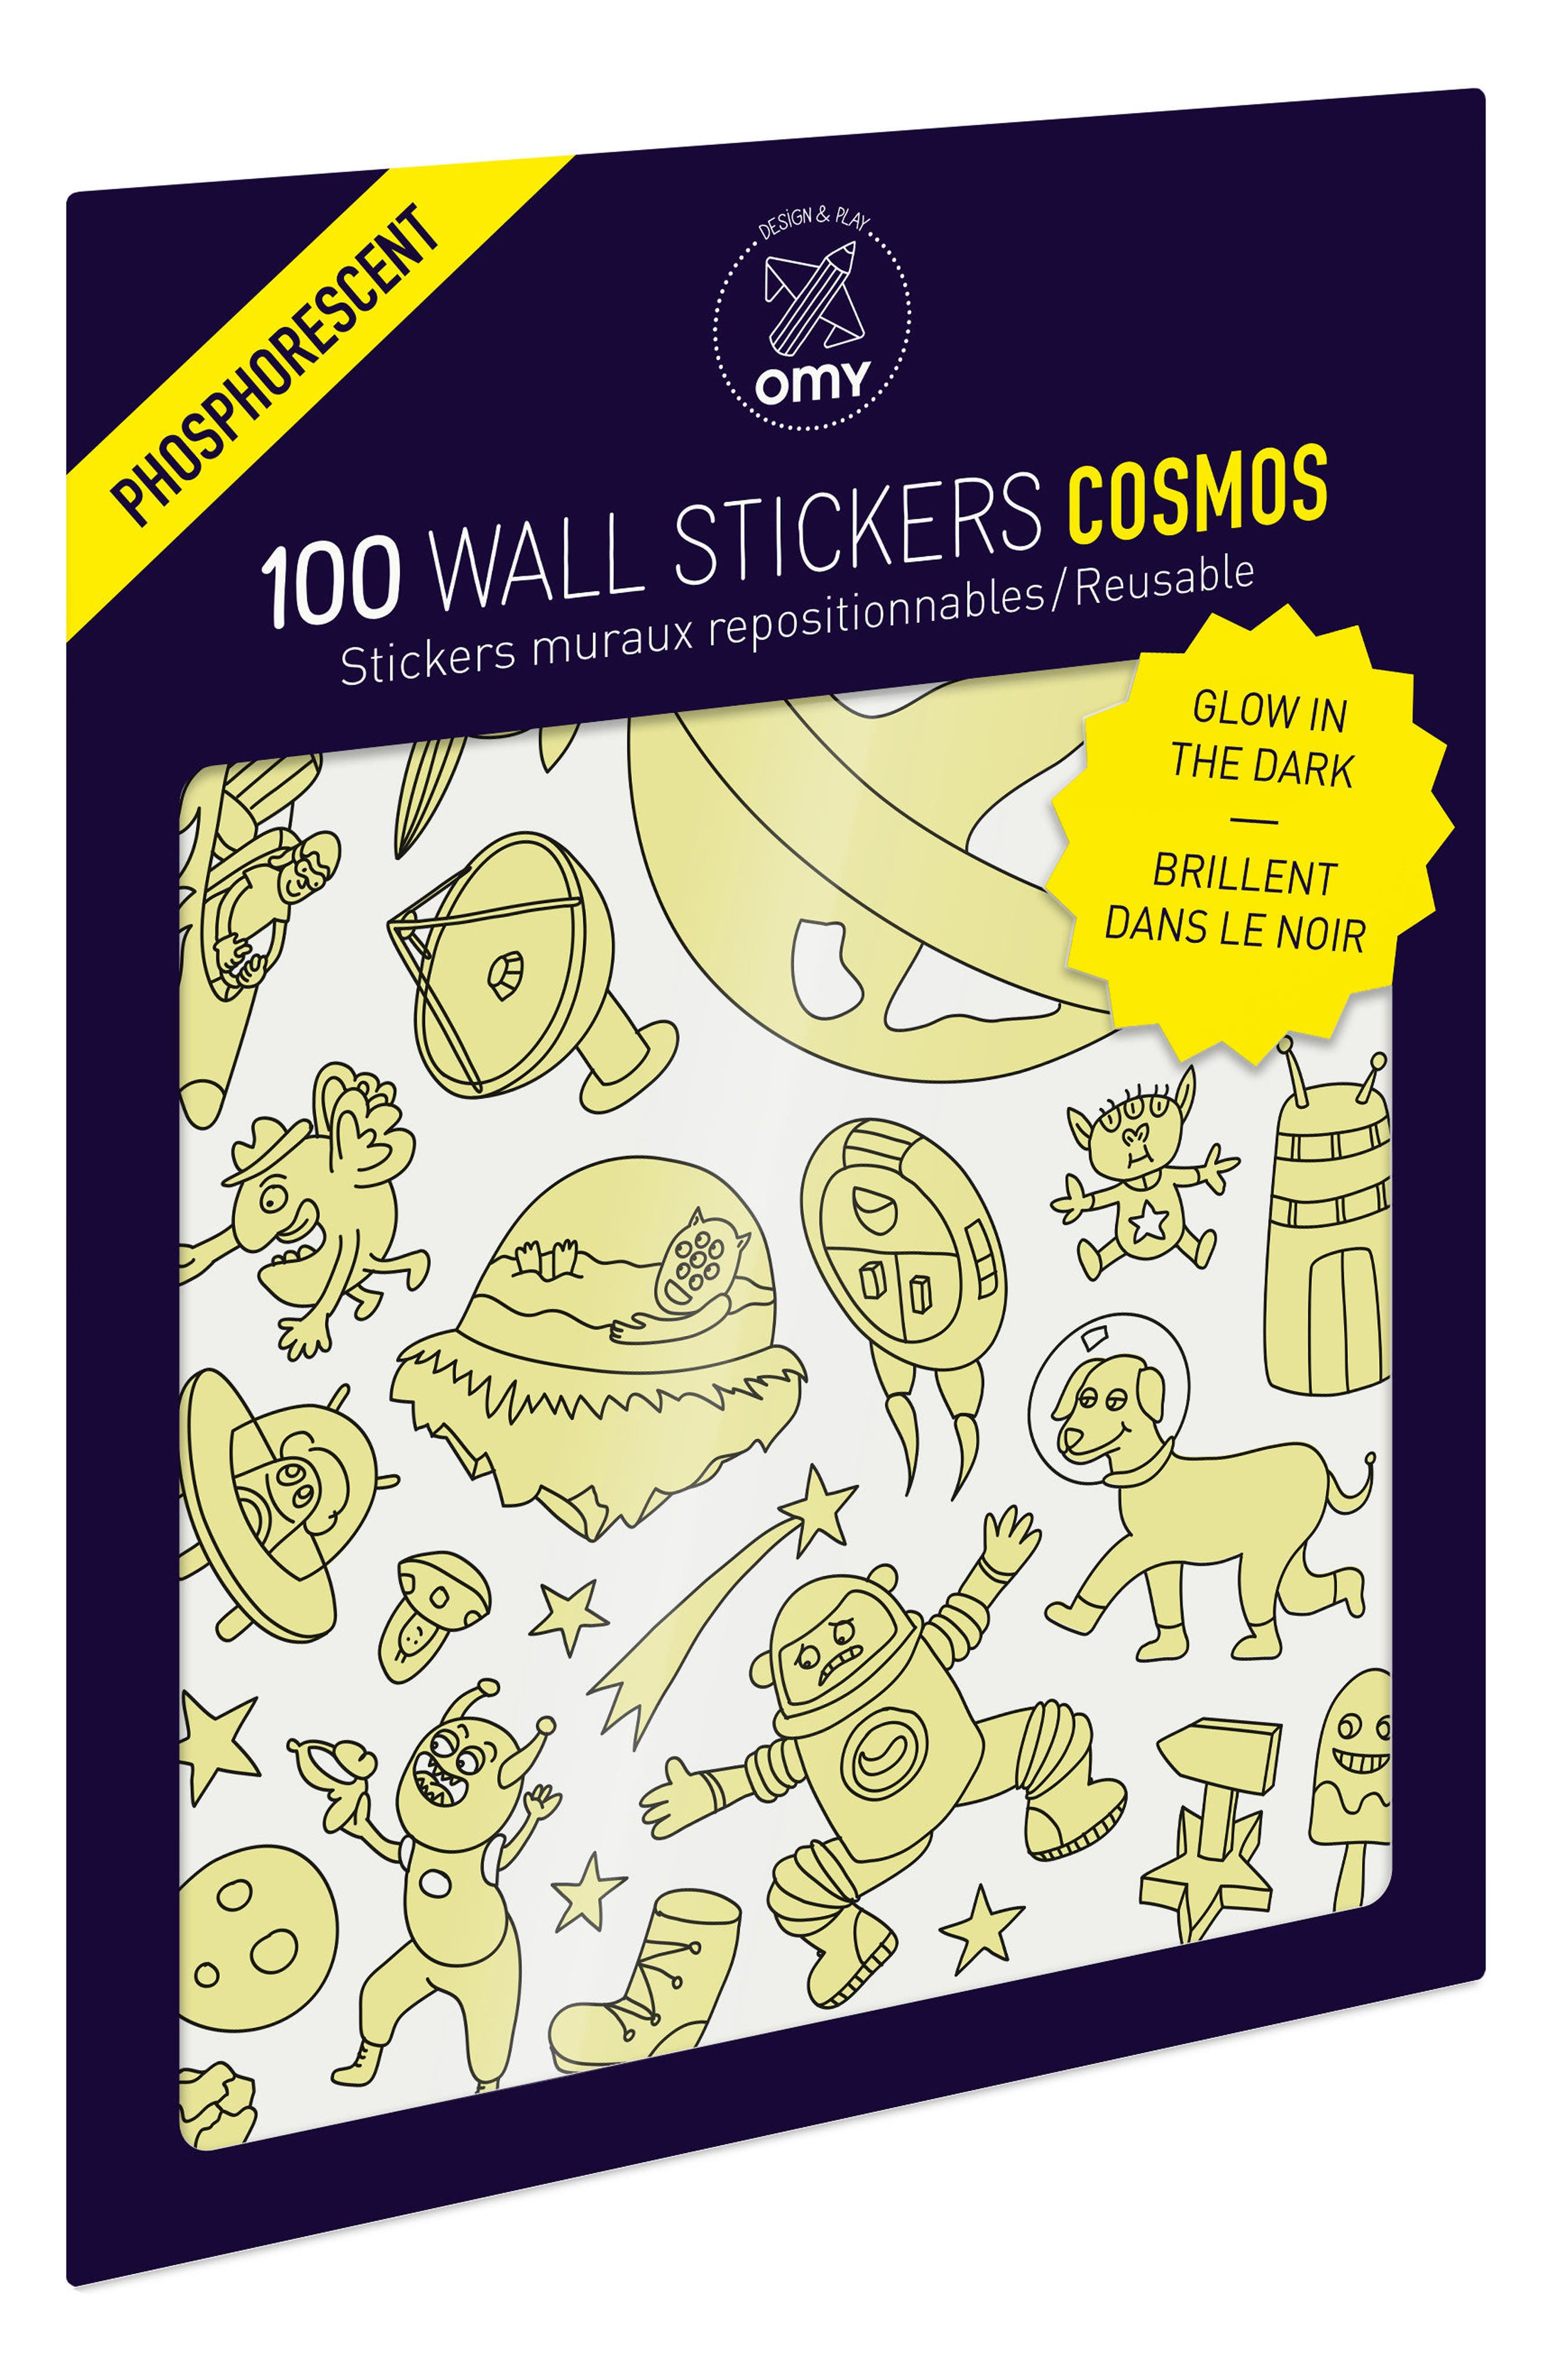 Set of 100 Cosmos Glow in the Dark Wall Stickers,                             Main thumbnail 1, color,                             Cosmos